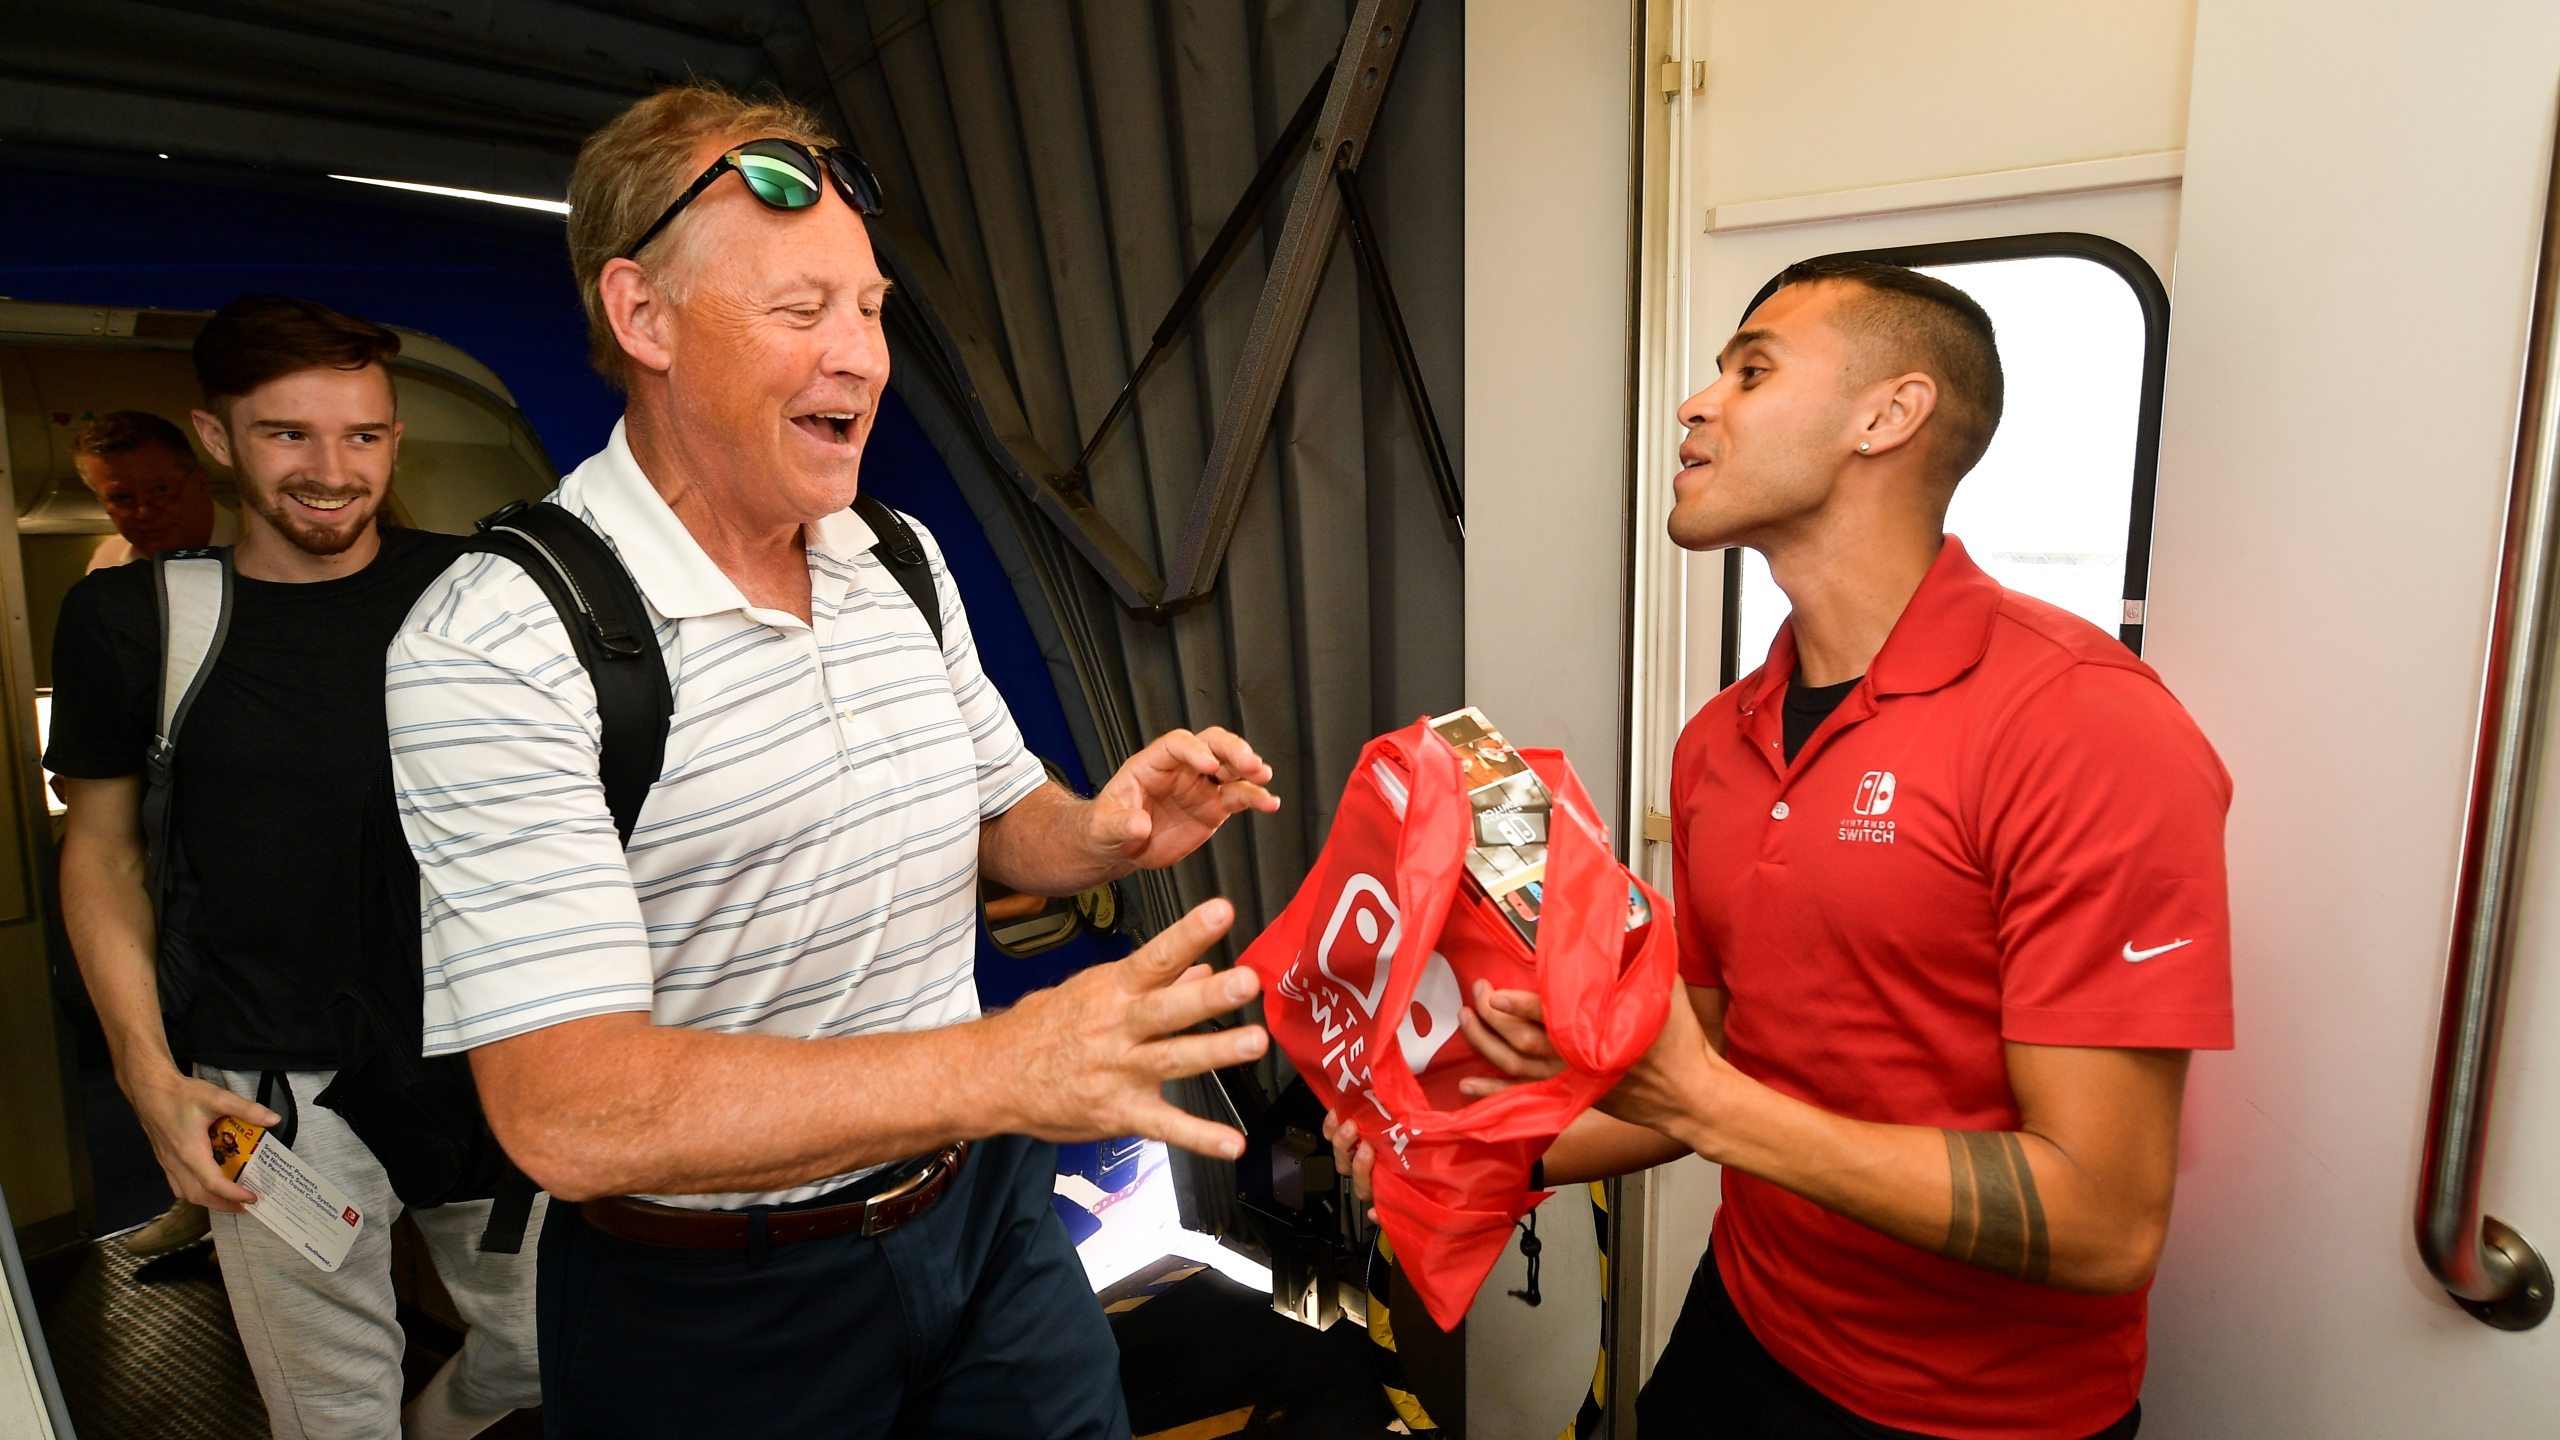 Southwest Airlines passengers are surprised with their own Nintendo Switch system at San Diego International Airport on July 17, 2019. (Credit: Matt Winkelmeyer/Getty Images for Nintendo)